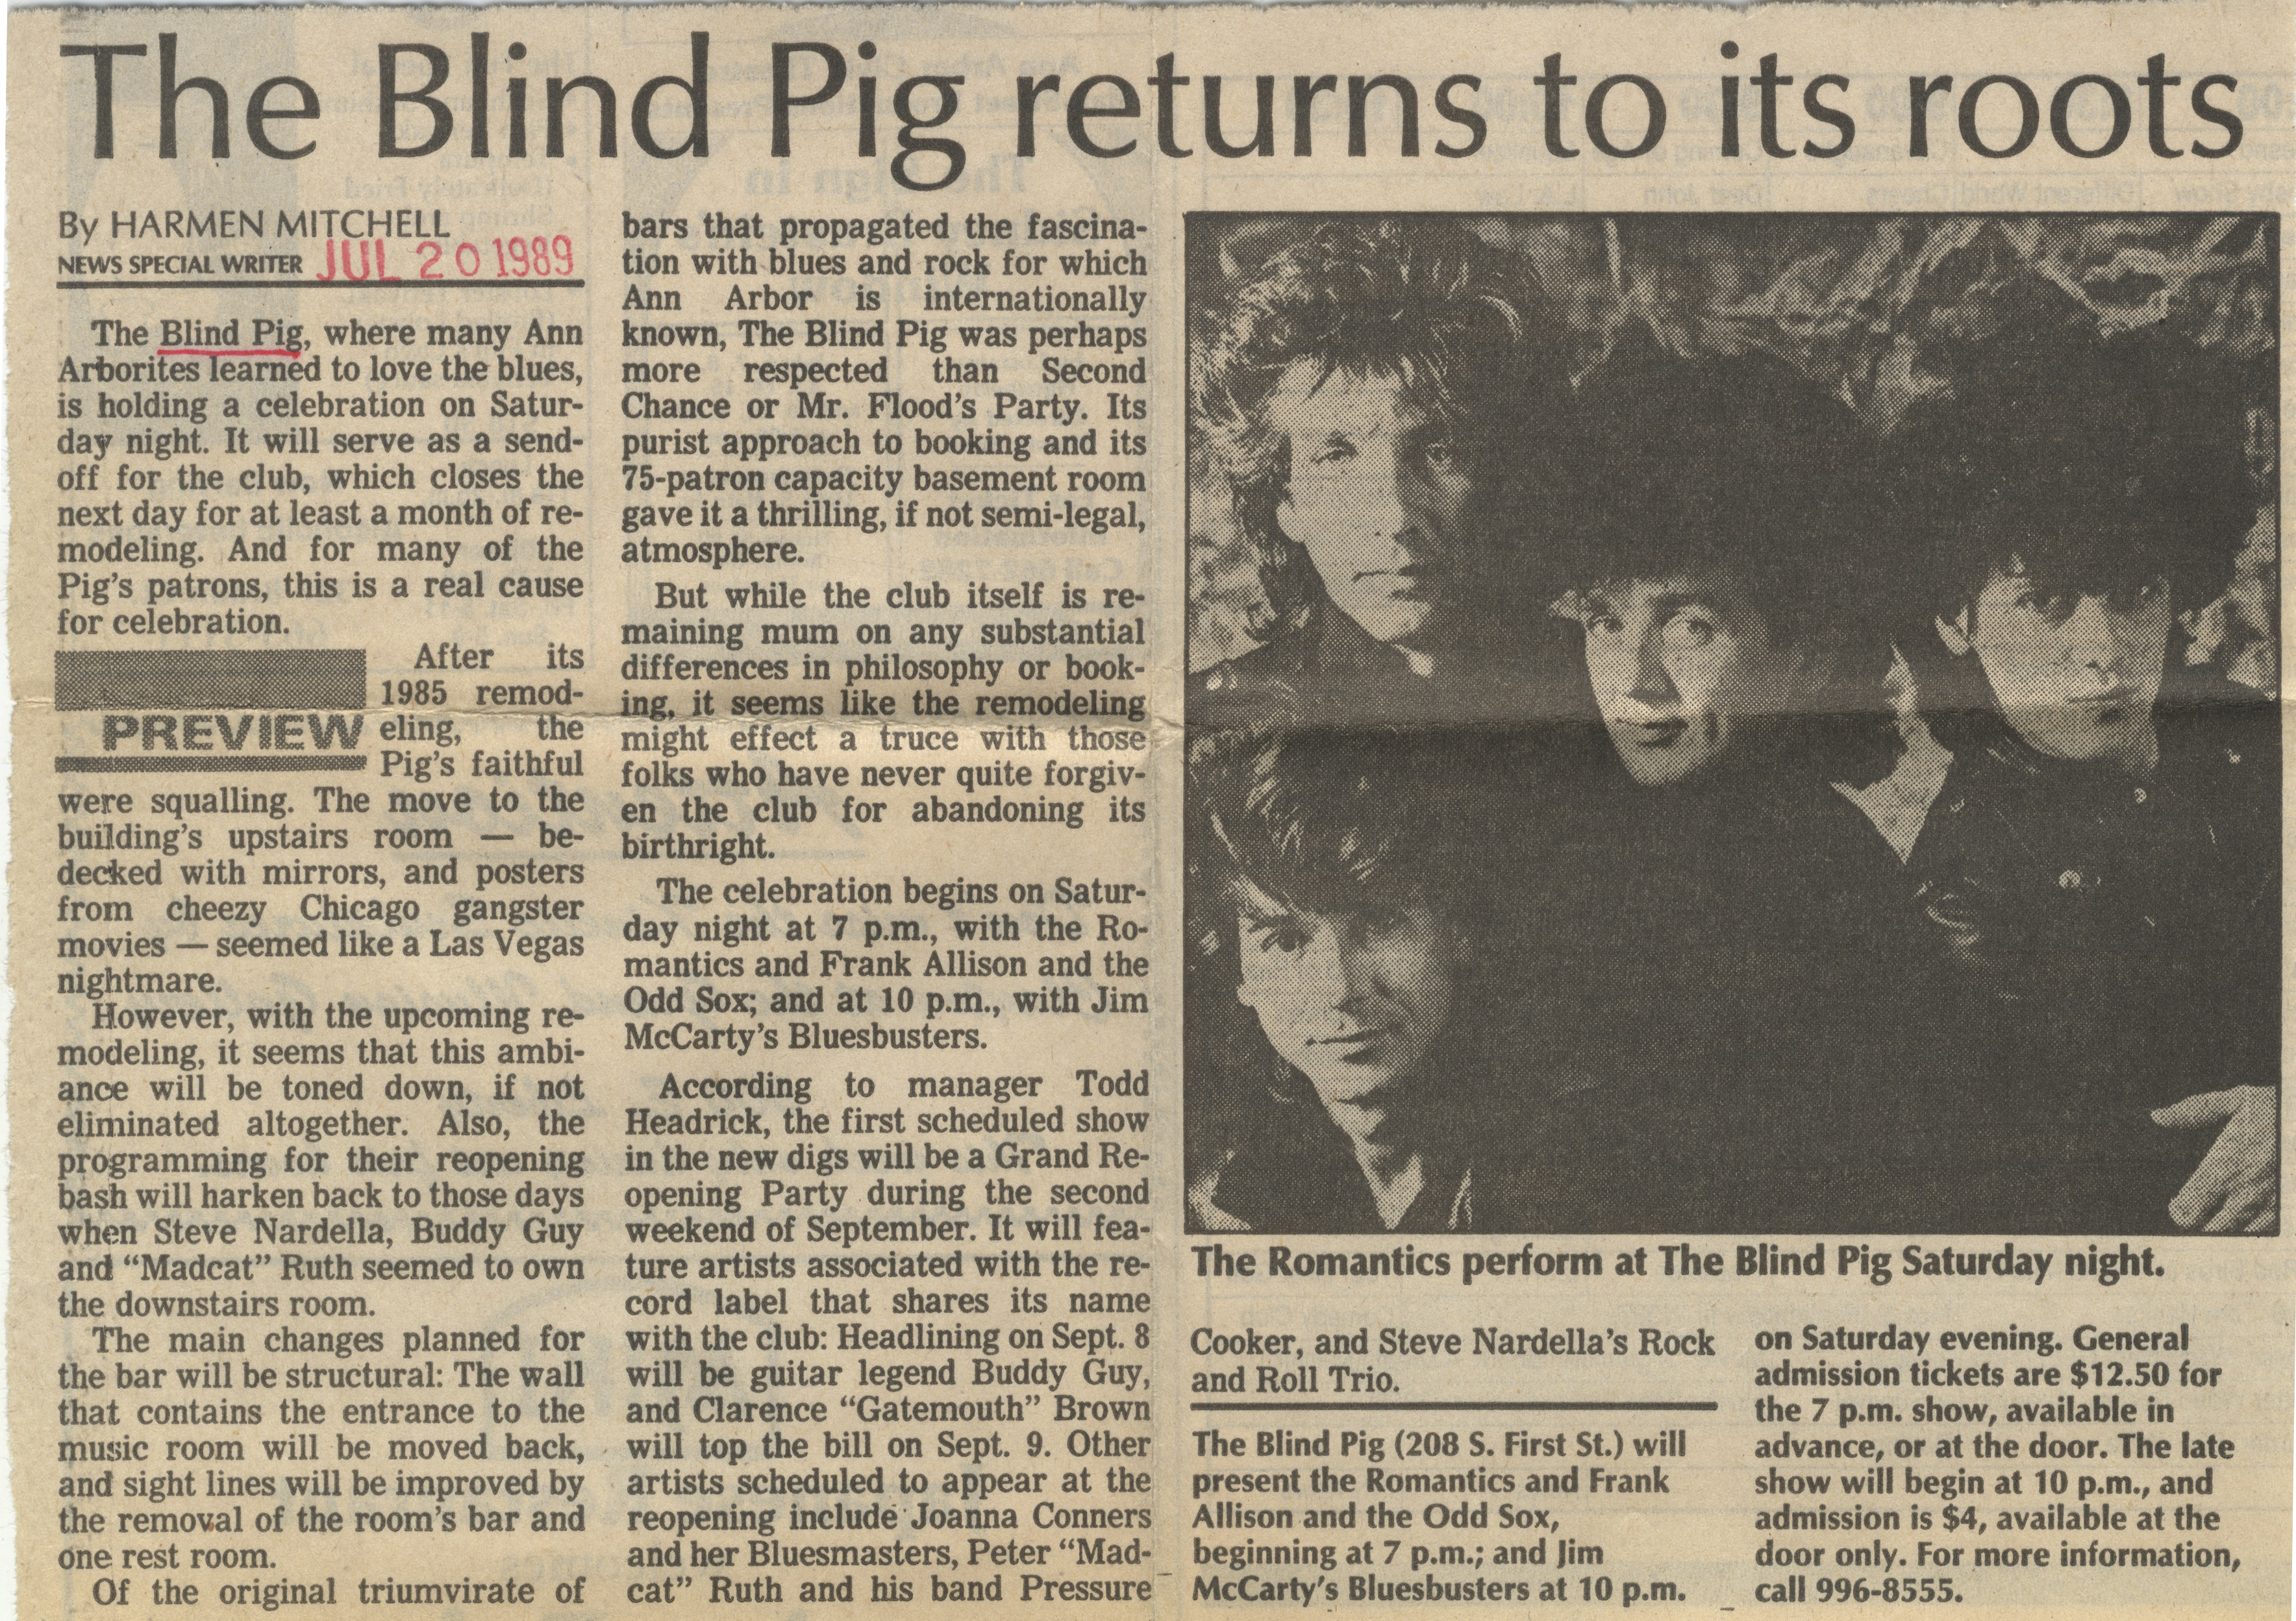 The Blind Pig Returns To Its Roots image